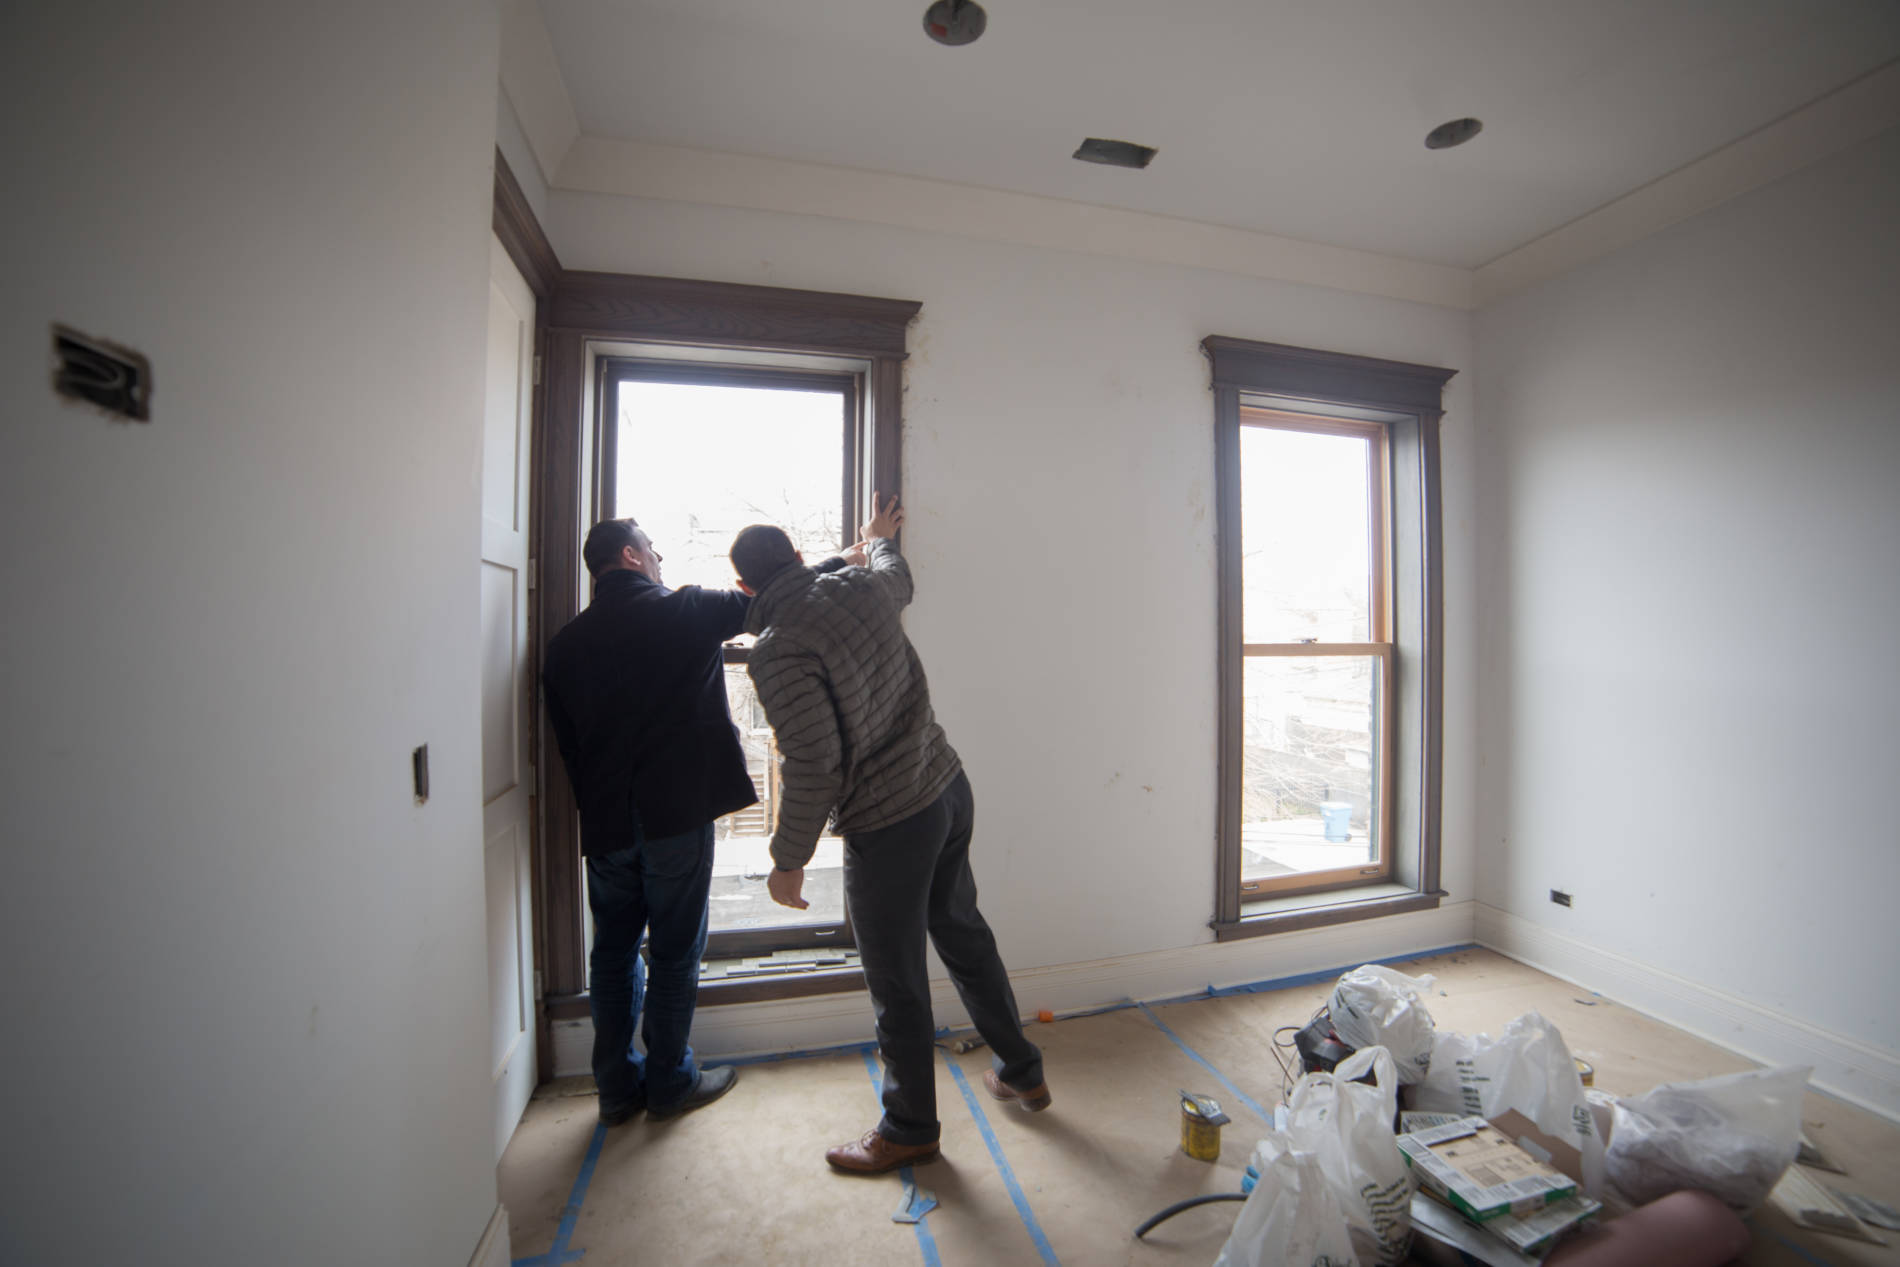 3-20-17 822 E 42nd St Paint Rear bedroom selection